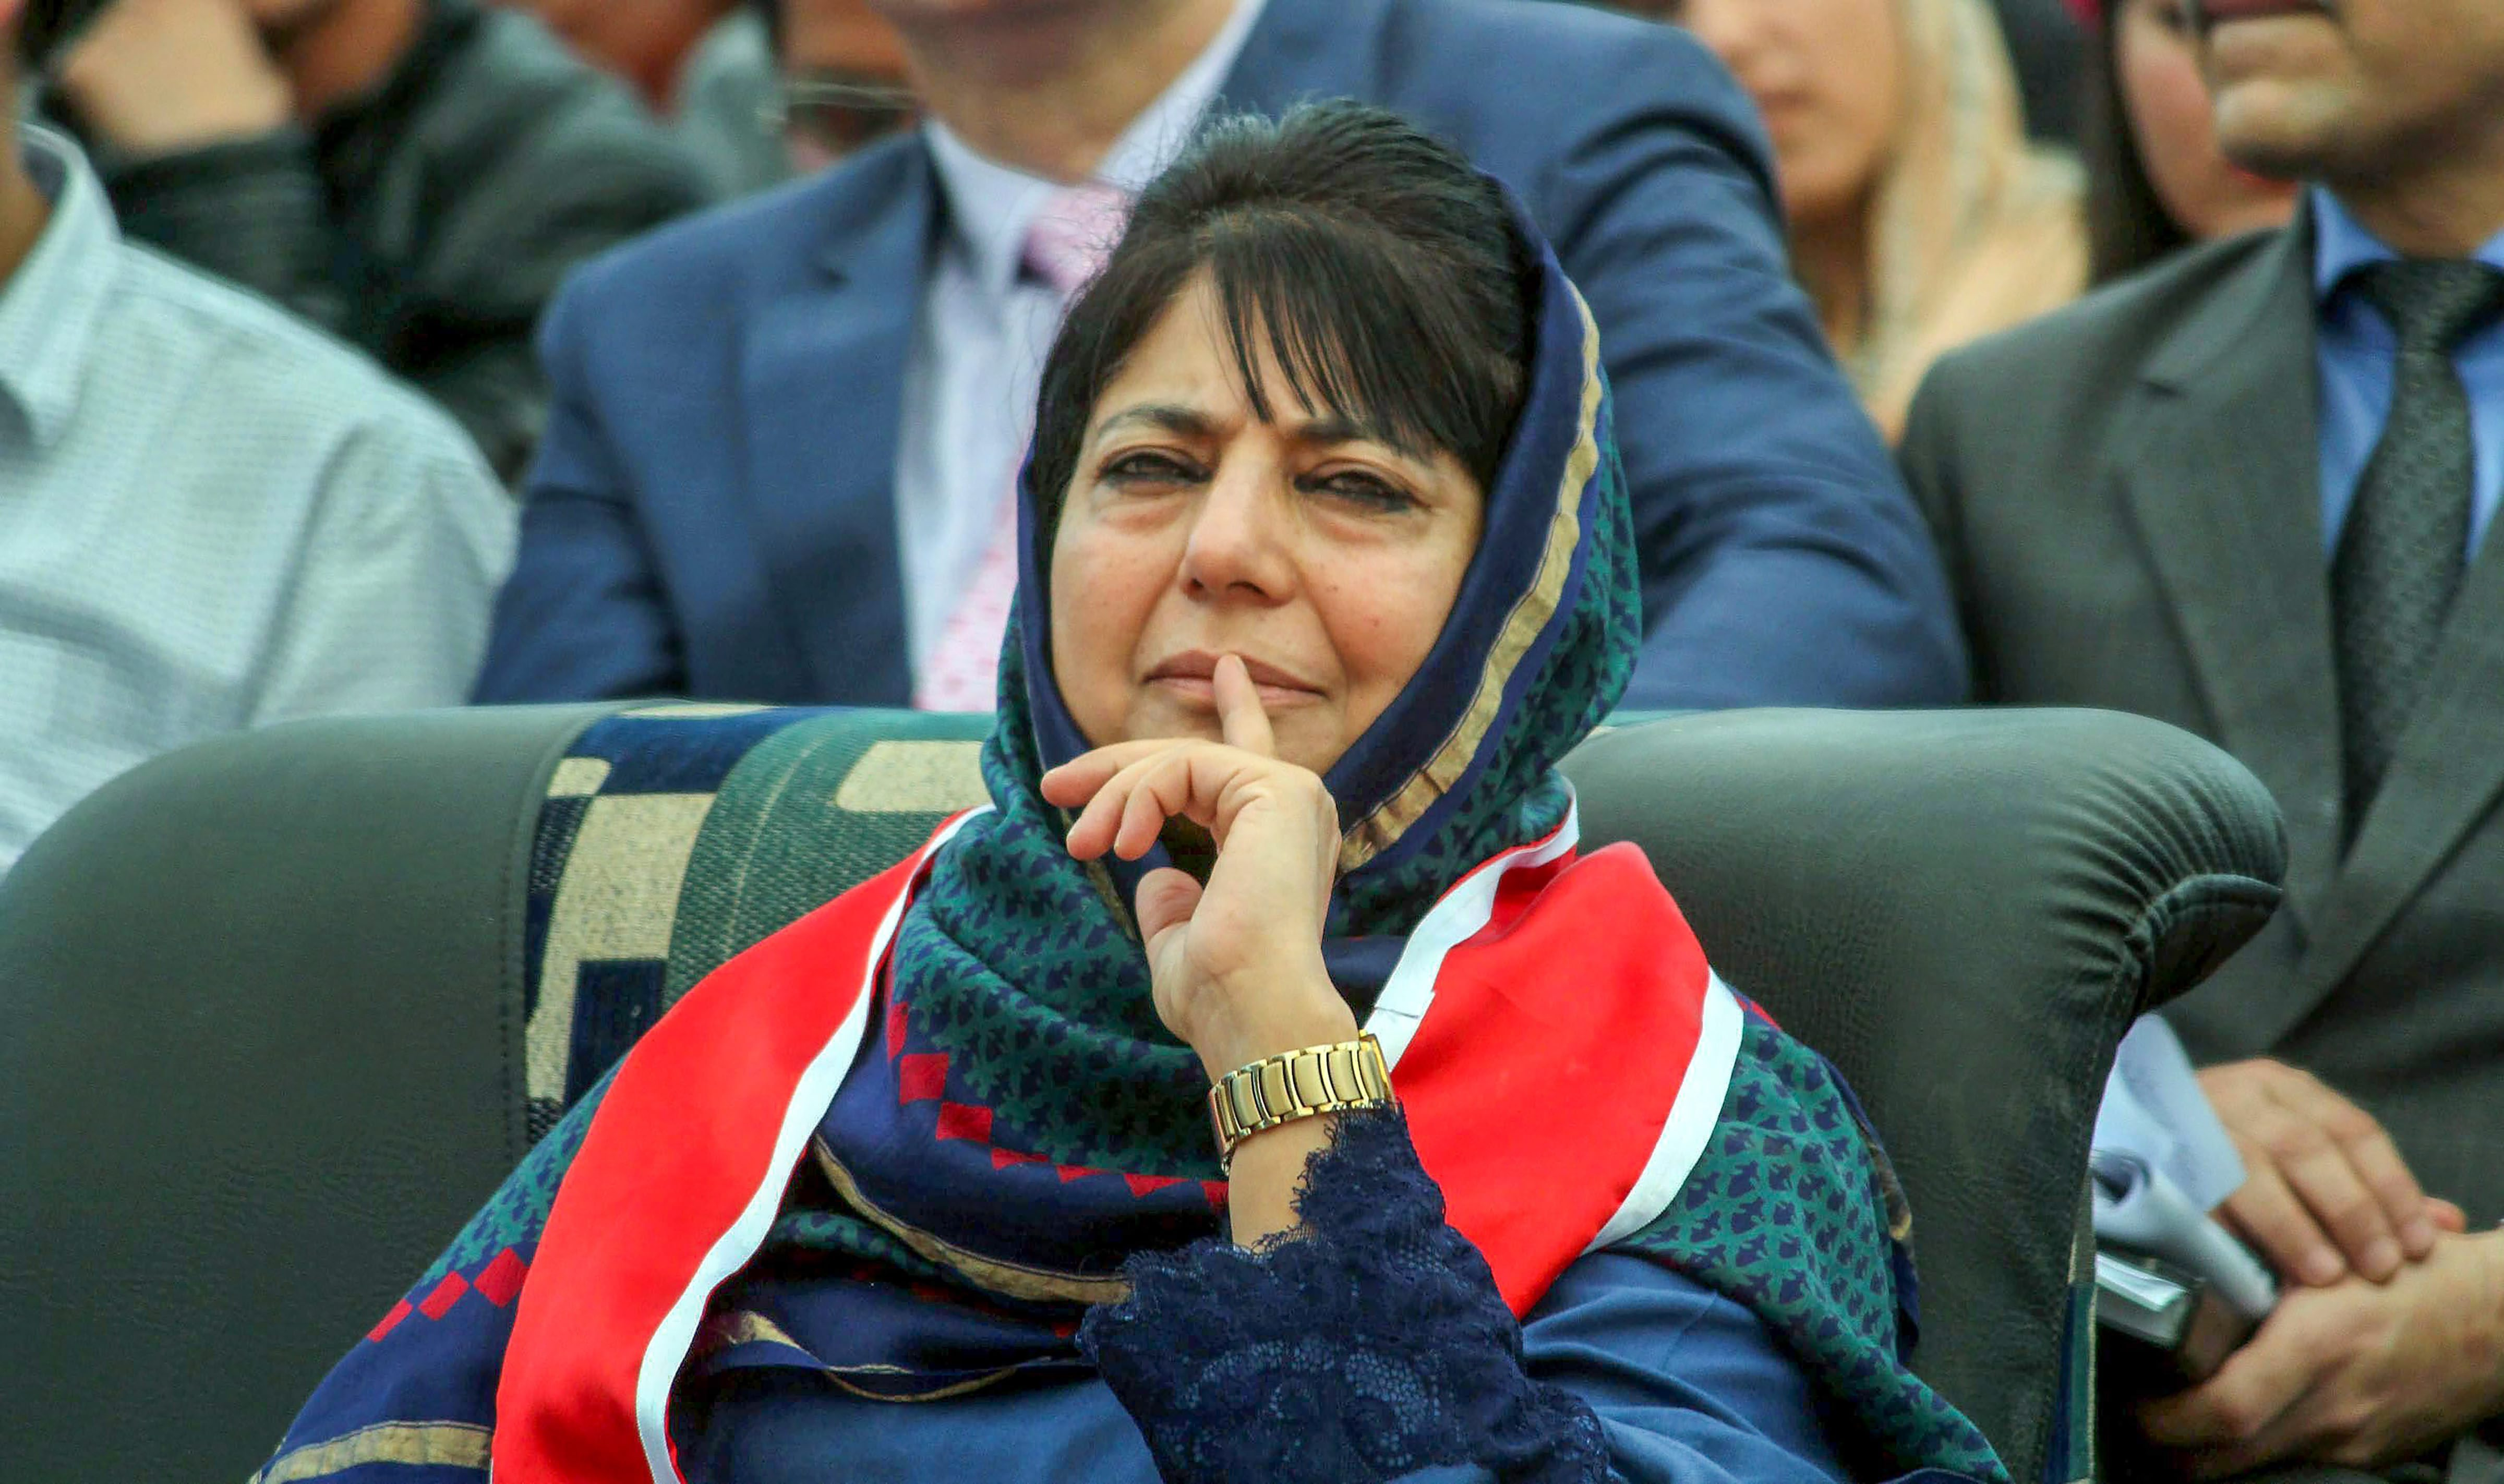 SC Issues Notice to J&K on Plea Challenging Mehbooba Mufti's Detention Under PSA